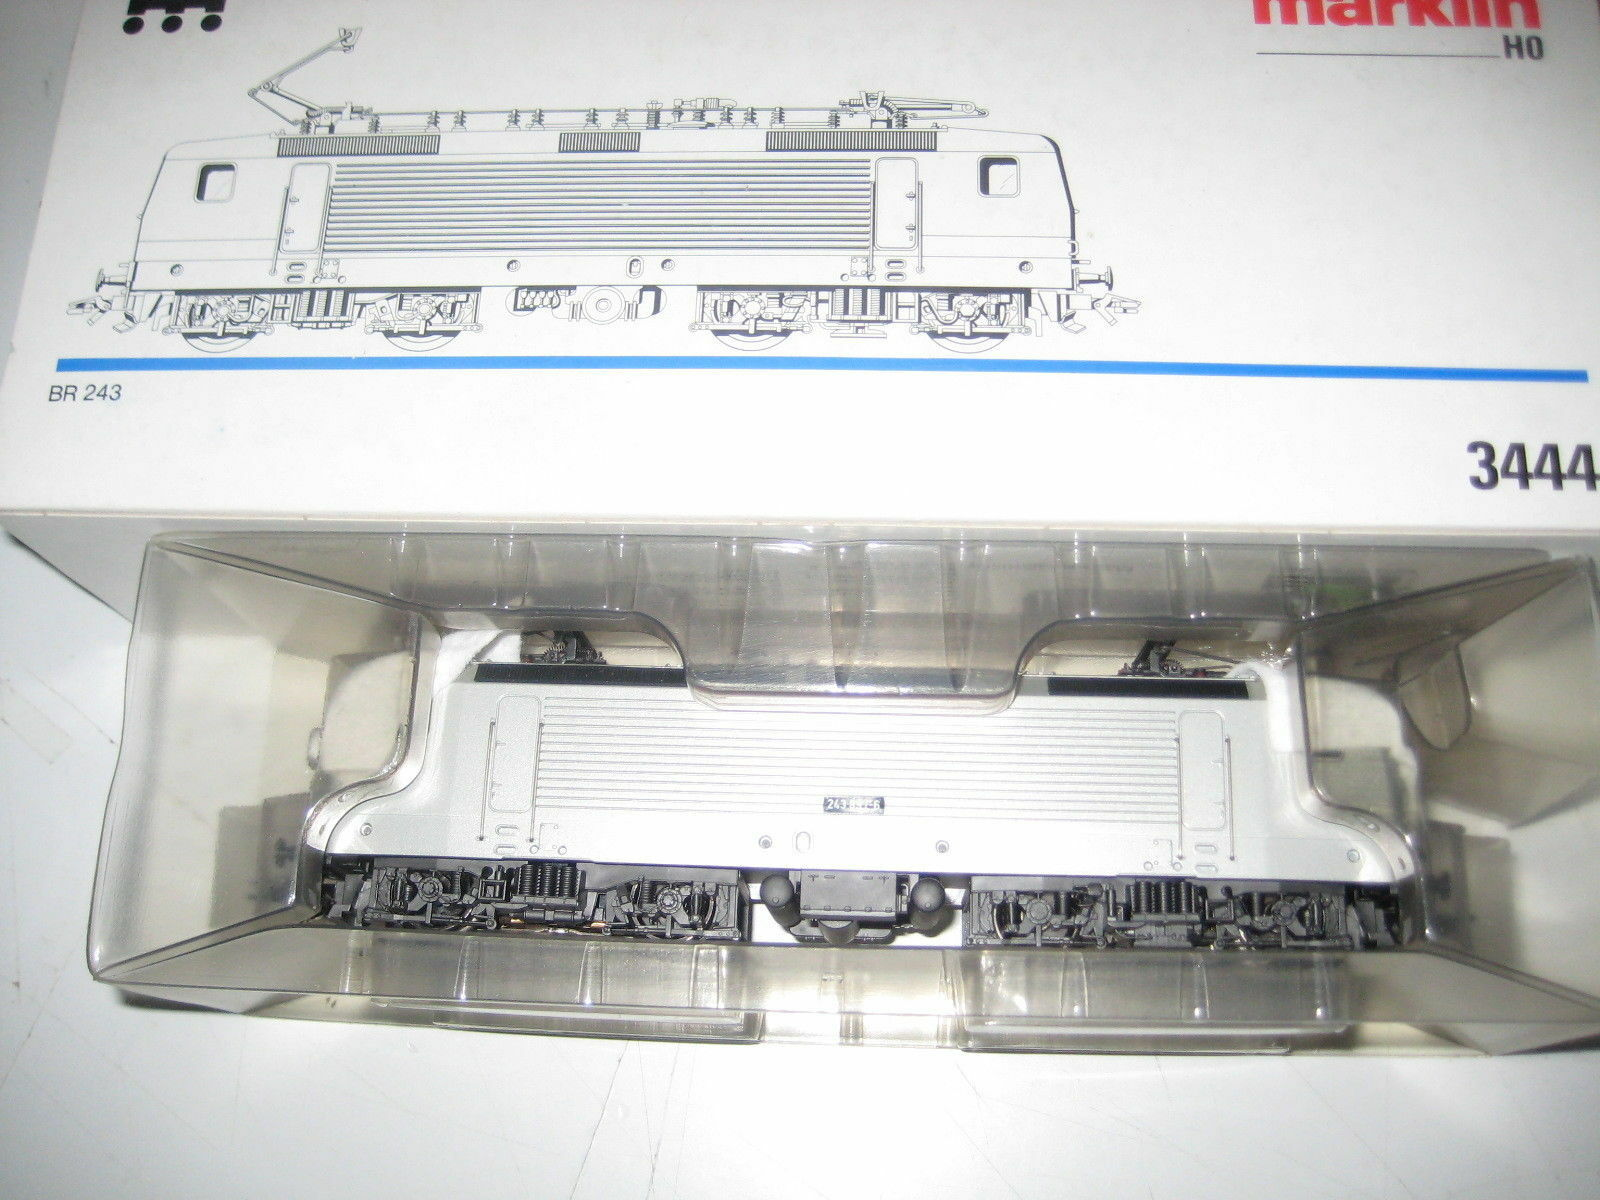 Marklin HO Locomotive and-Loc 243897-6 Art. 3444